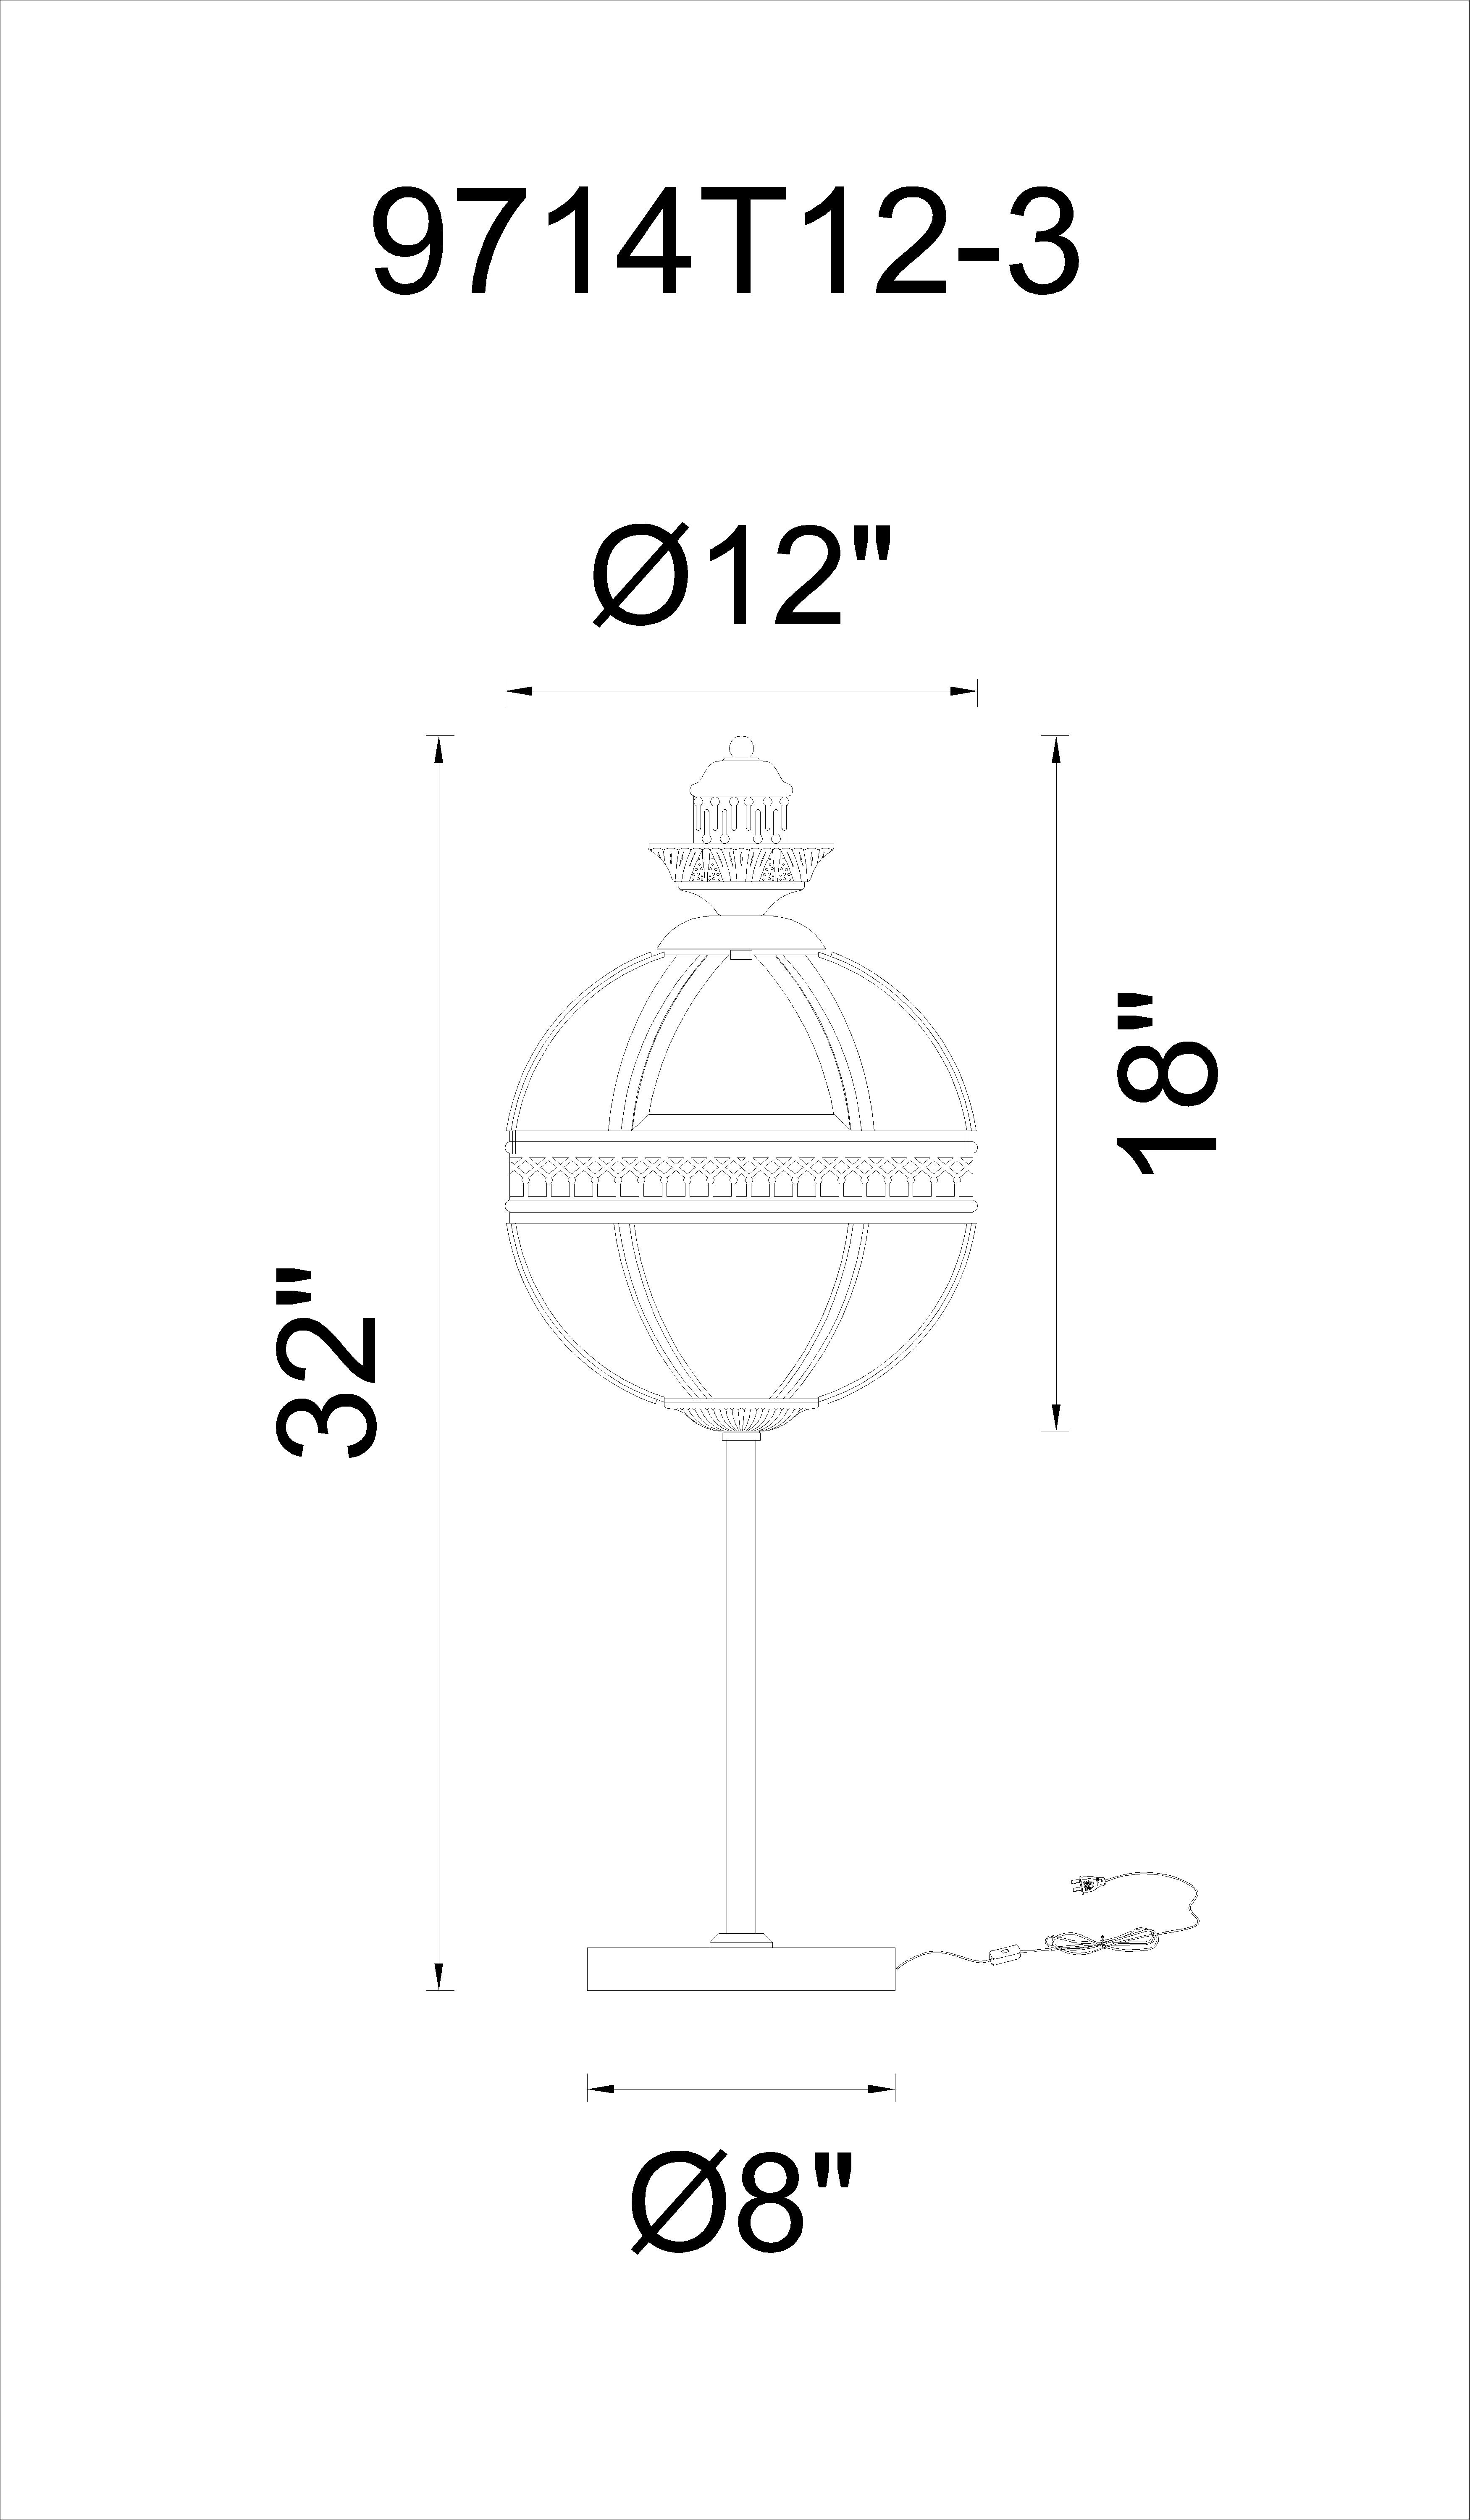 CWI Lighting Lune 3 Light Table Lamp With Black Finish Model: 9714T12-3-101 Line Drawing